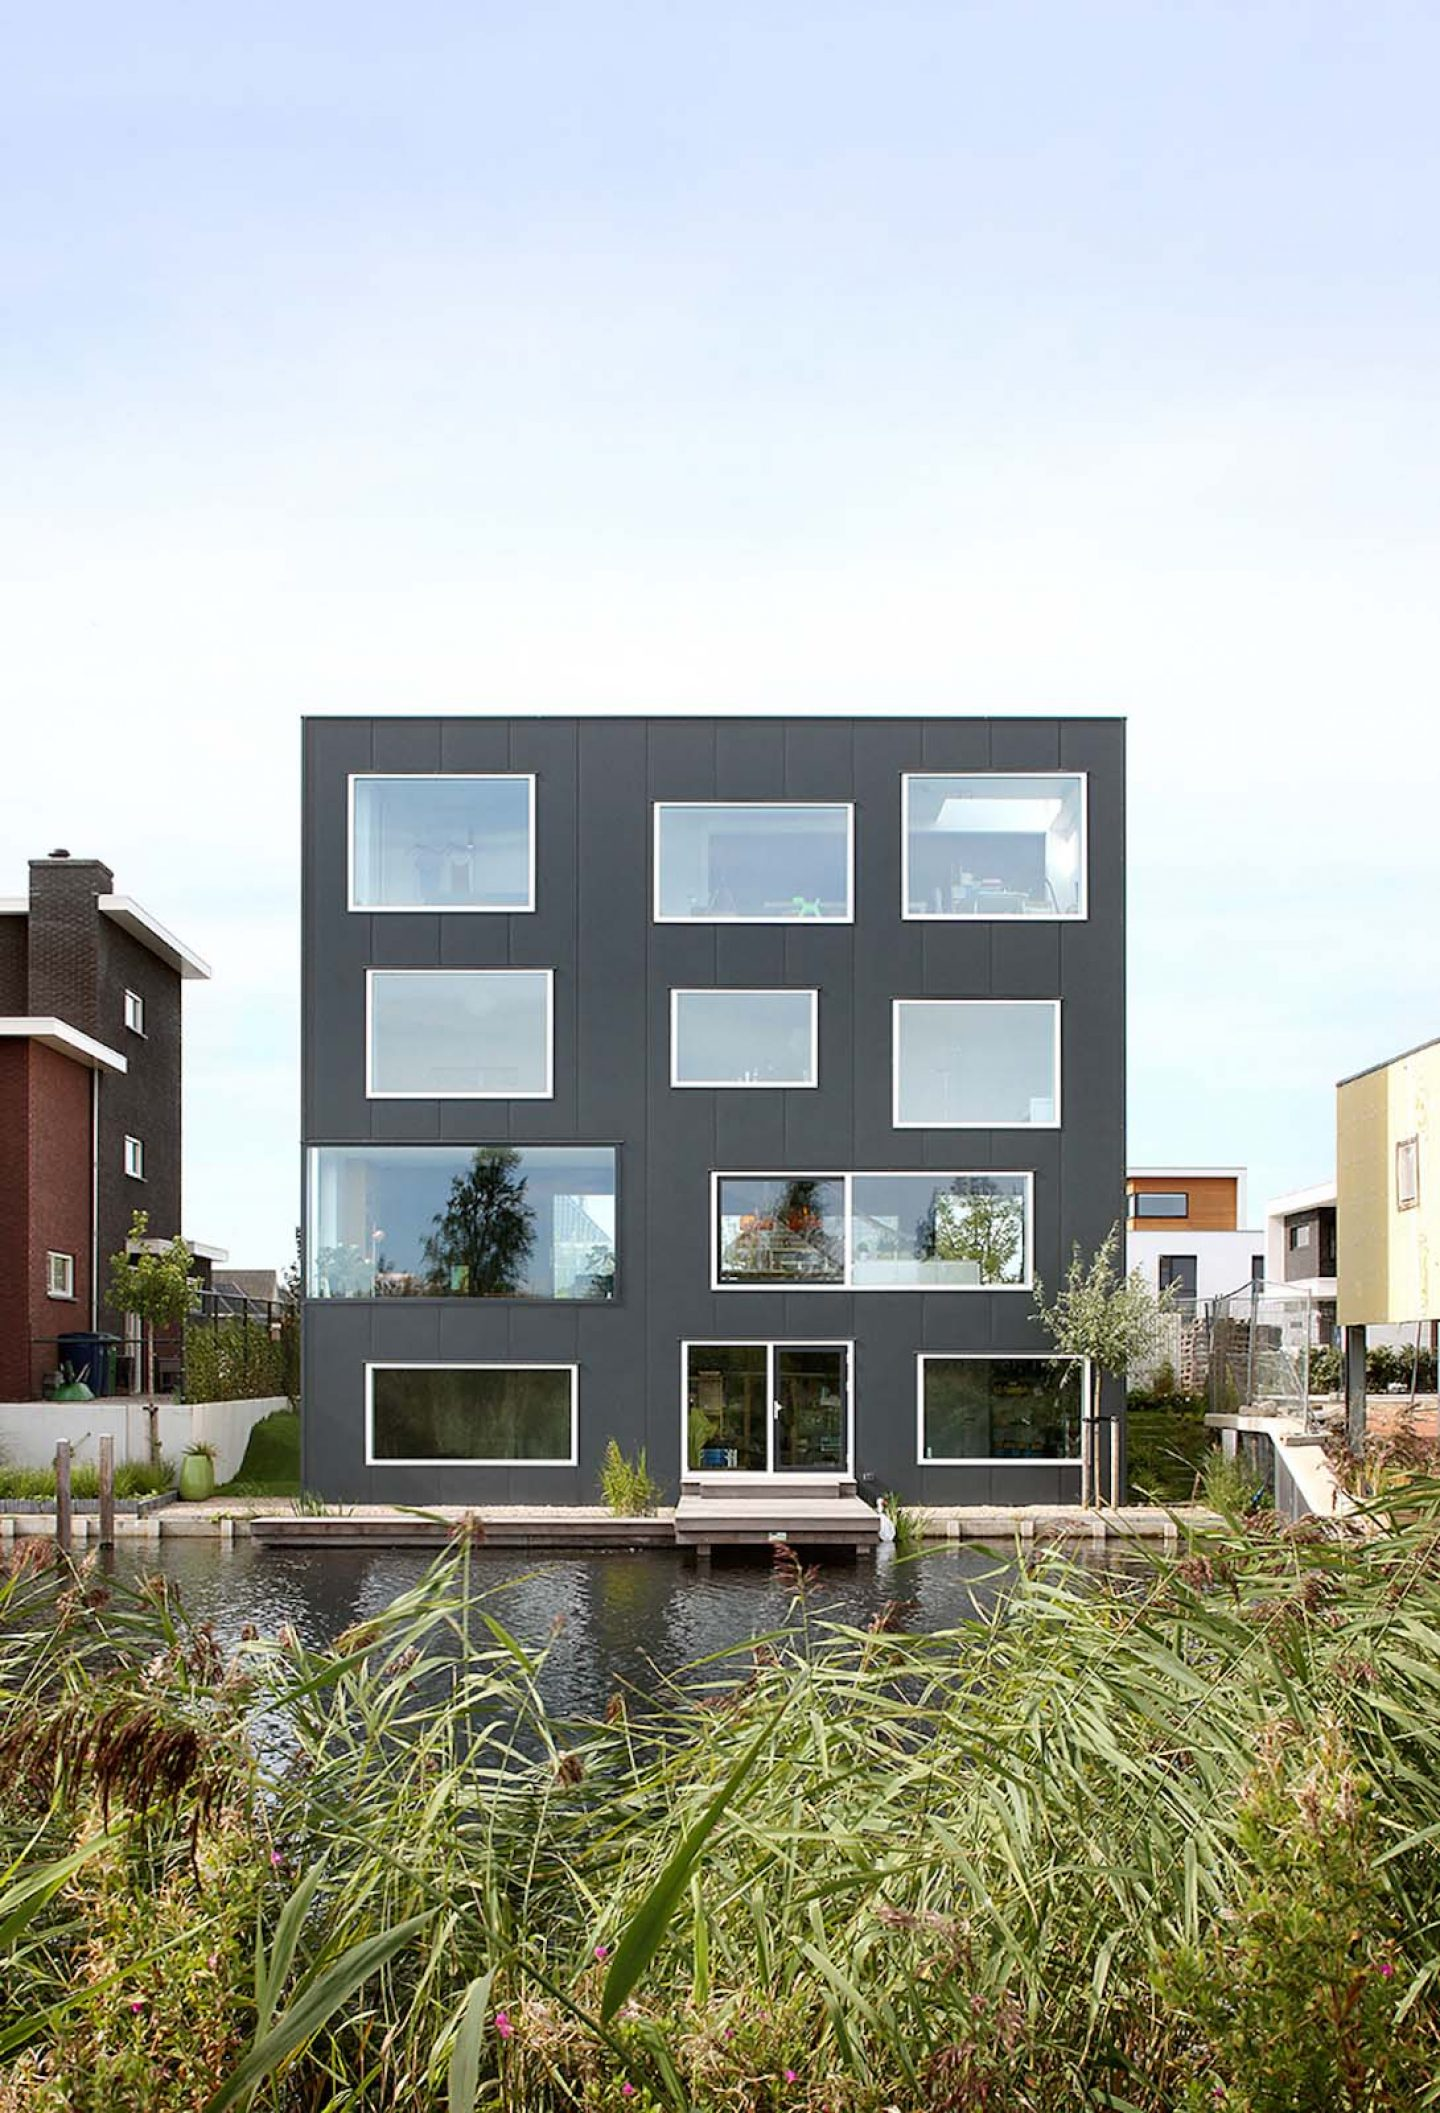 ignant_architecture_mka_woning_almere_small_02